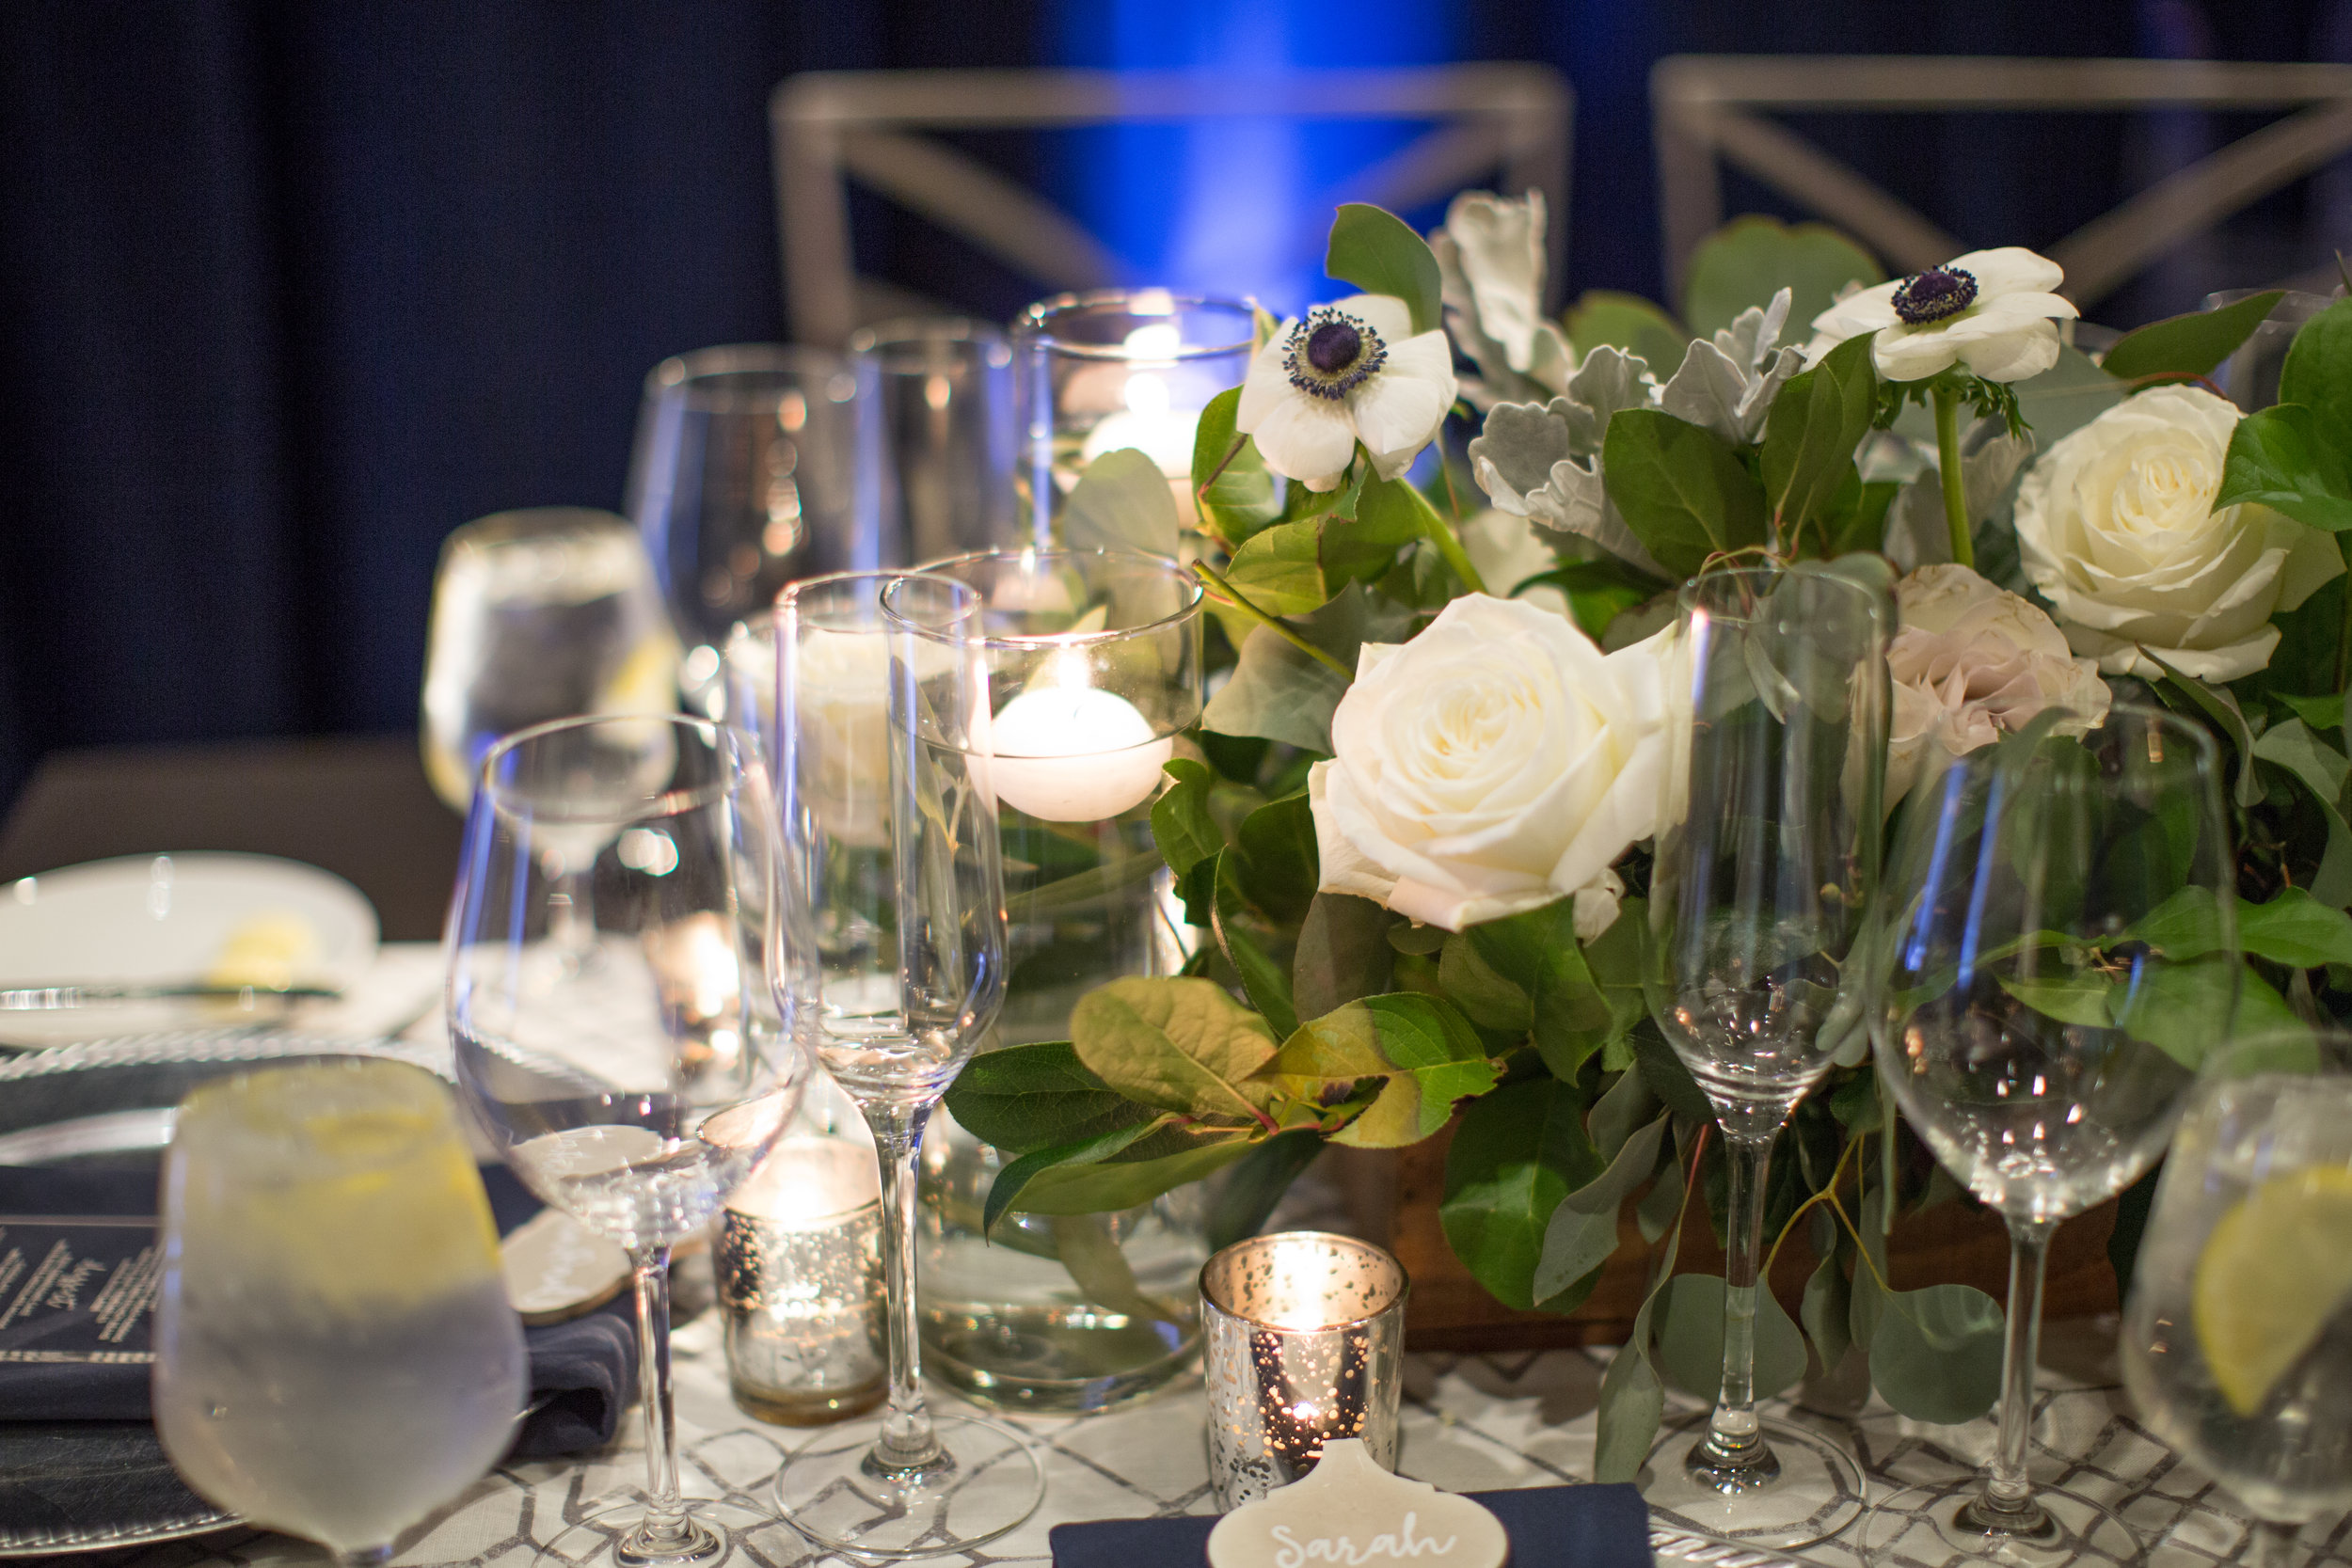 48 white flower centerpiece rose black white poppy white flower black center candlelight dinner wedding guest table Life Design Events photos by Melissa Jill Photography.jpg